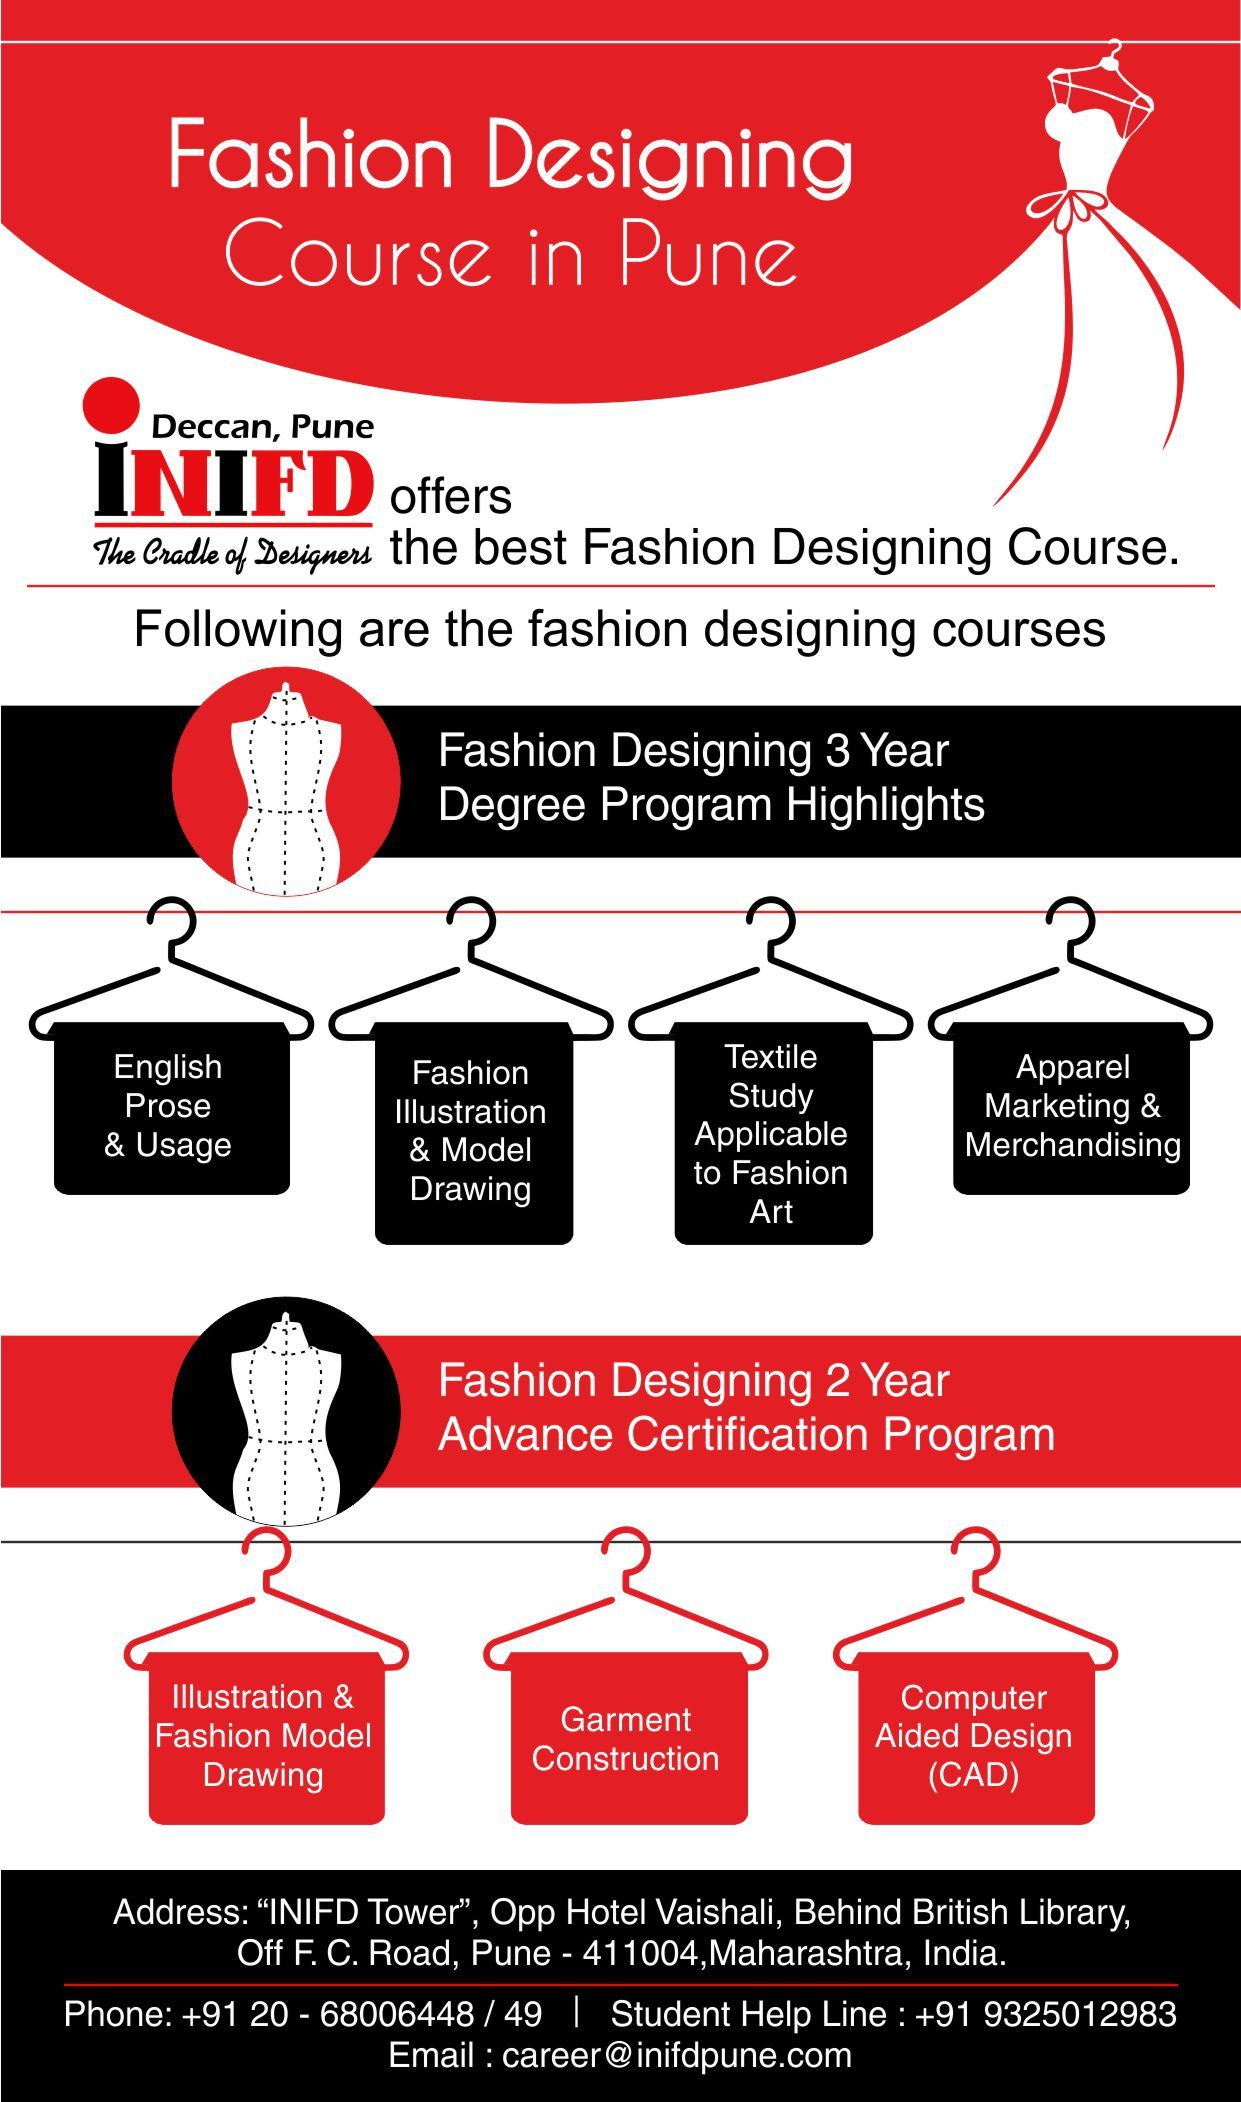 Fashion Designing Colleges Are More In Pune But Inifd Deccan Is One Of The More Popular In Pune Fashion Designing Course Fashion Designing Colleges Cool Style